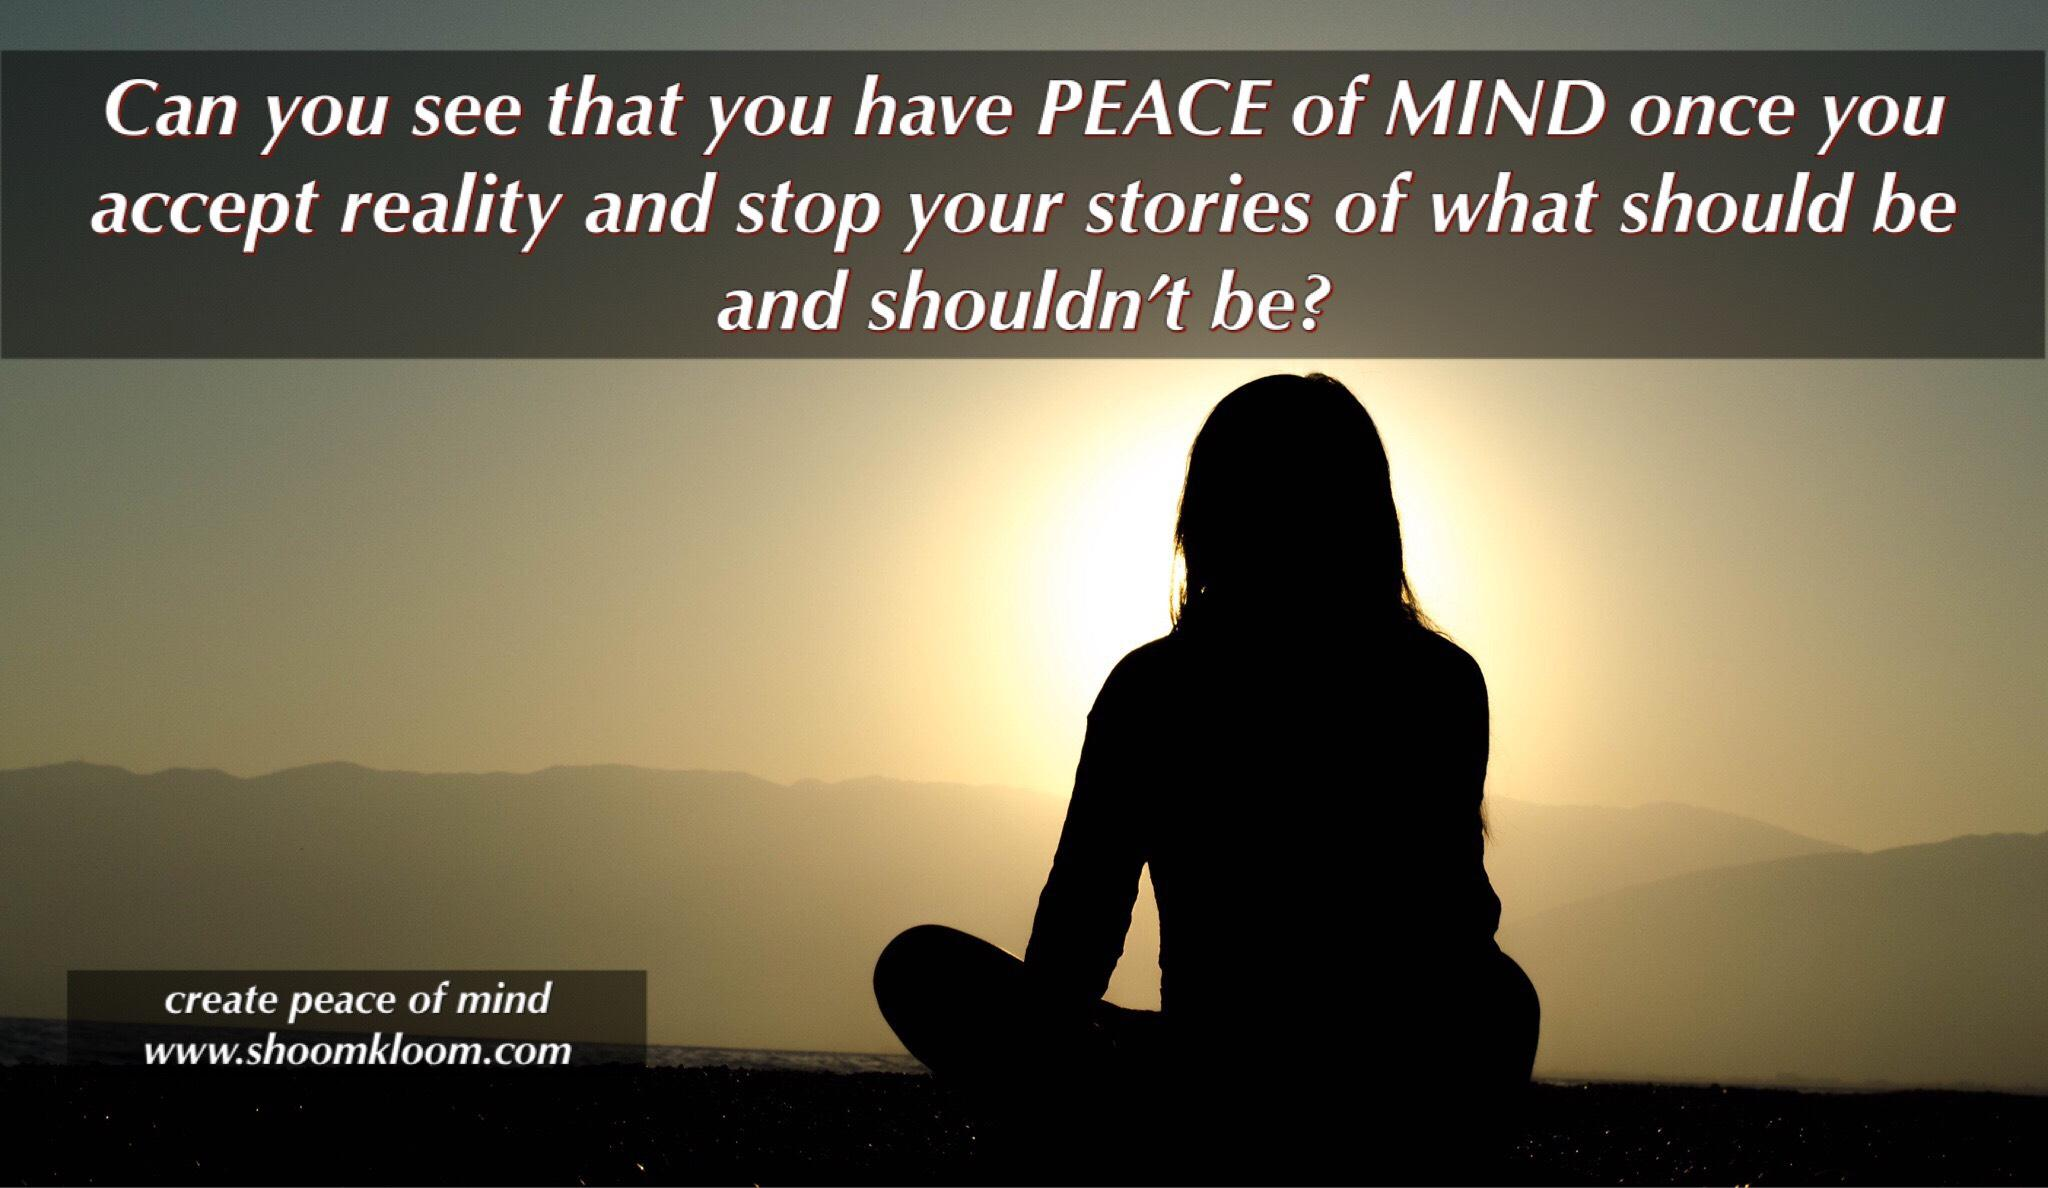 Can you see that you have PEACE of MIND once you accept reality and stop your stories of what should be and shoutdnzt an create peace of mind www. shoomkloom.com https://inspirational.ly